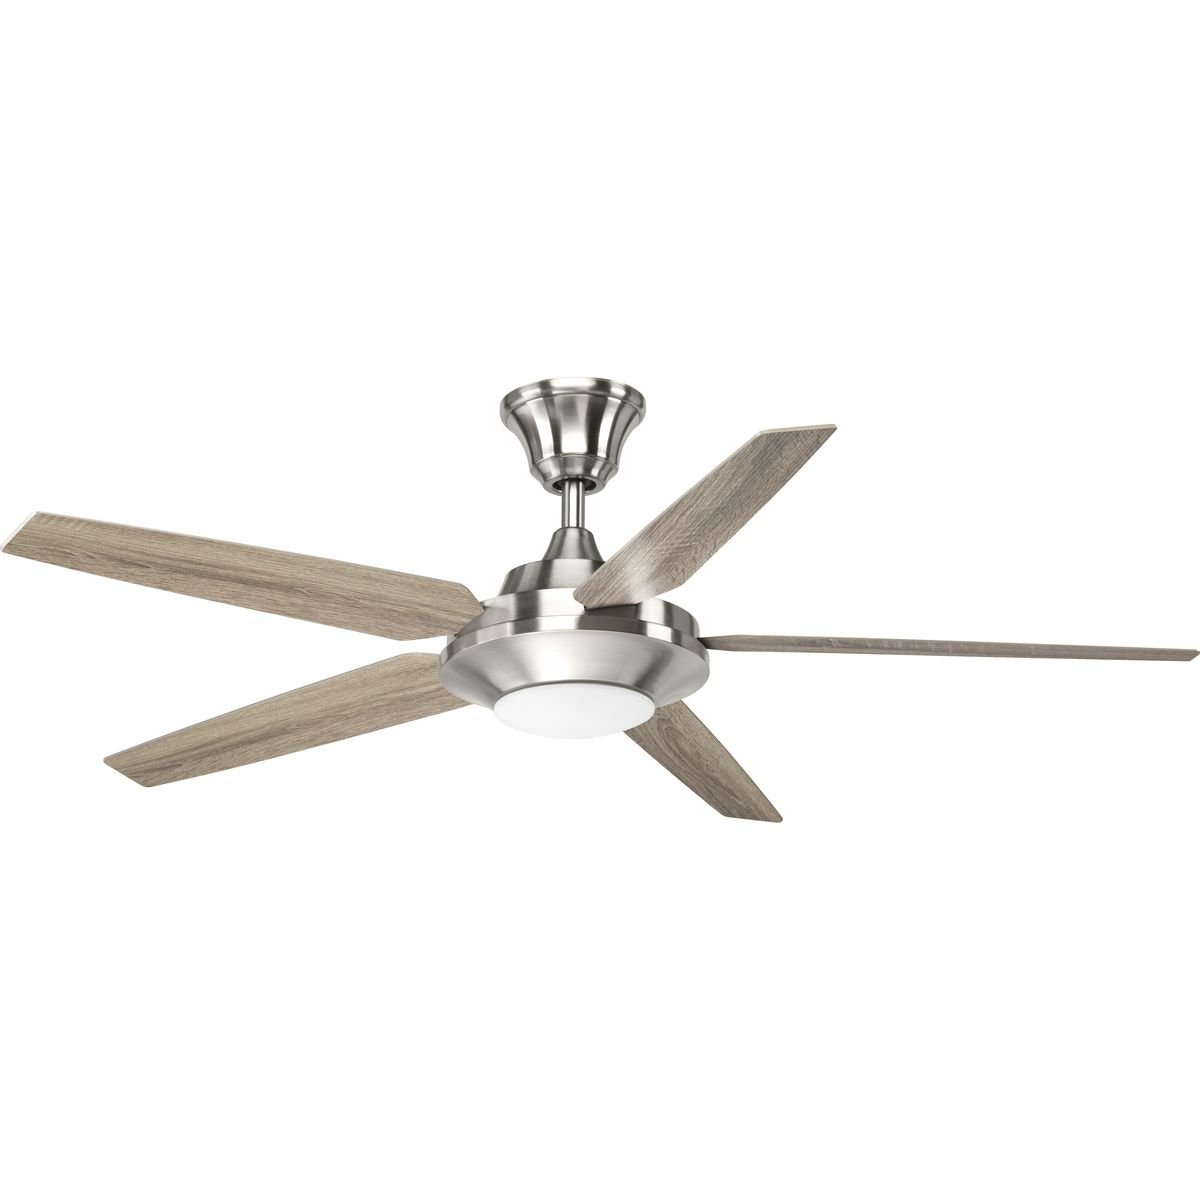 "54"" Searles 5 Blade Led Ceiling Fan With Remote, Light Kit Included For Recent Calkins 5 Blade Ceiling Fans (View 16 of 20)"